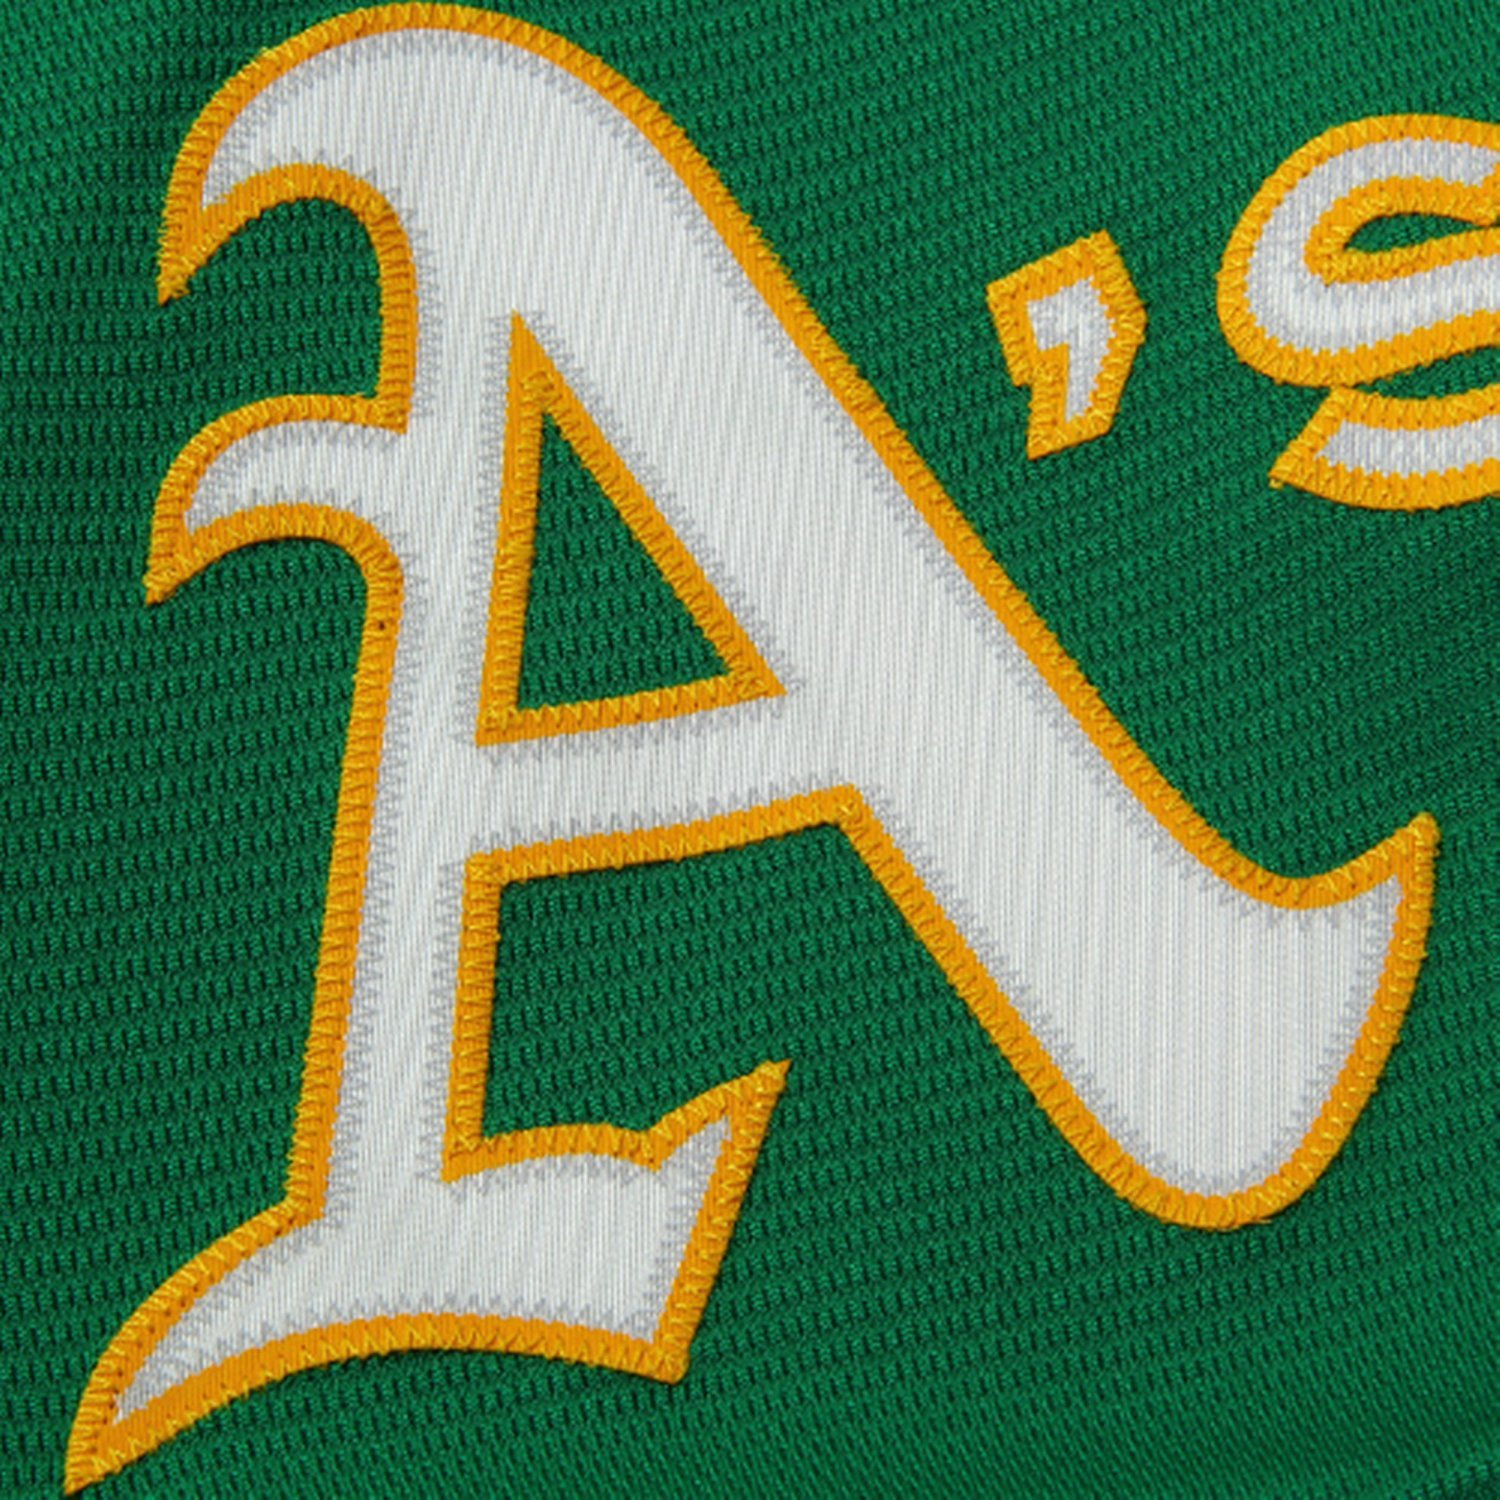 4dee435c3 Amazon.com   Majestic Oakland Athletics Cooperstown Cool Base Retro Green  Jersey   Sports   Outdoors